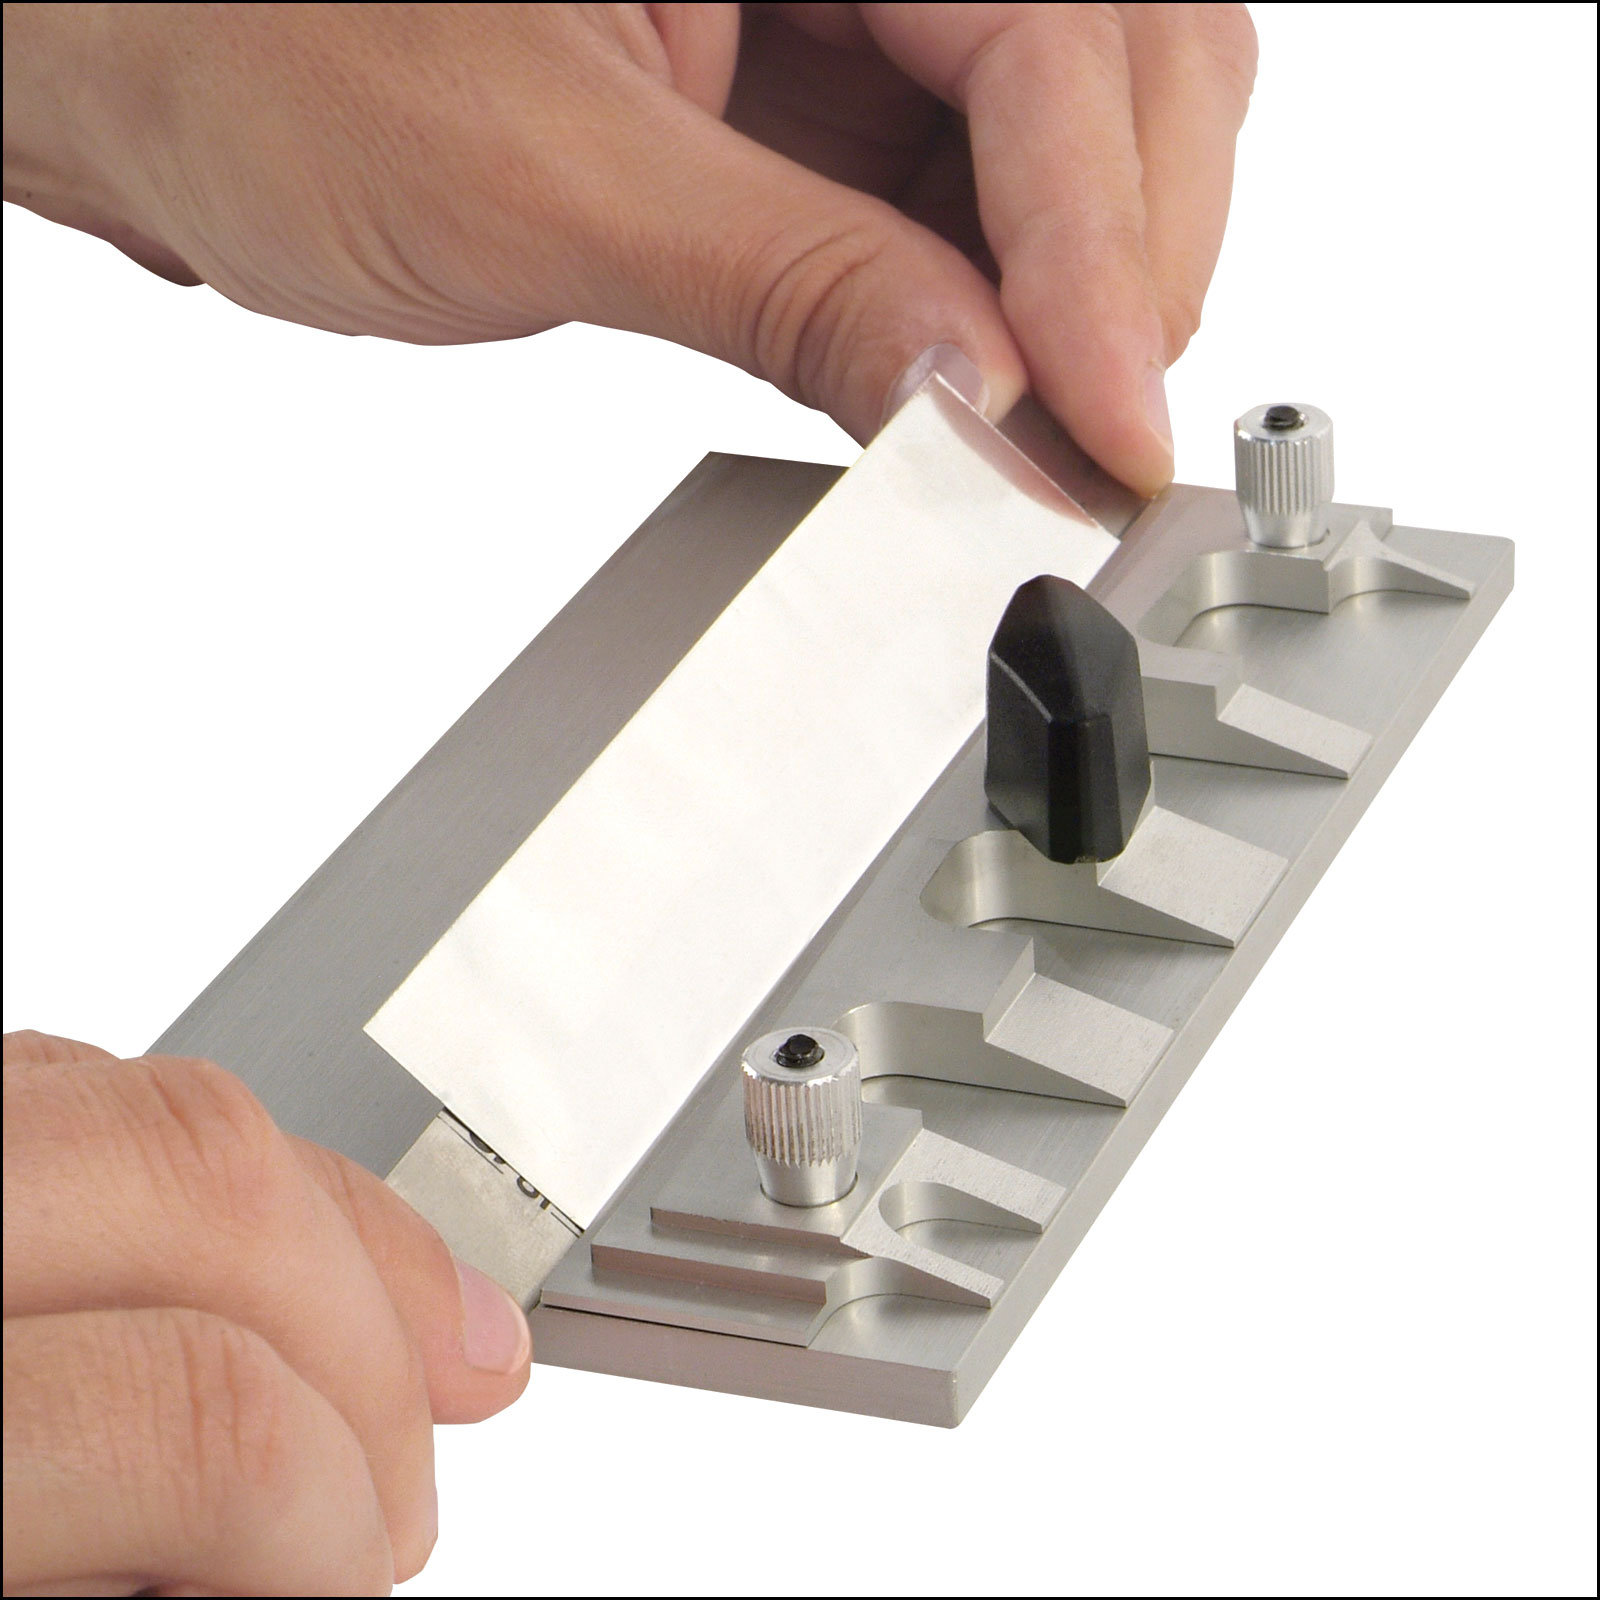 Heavy Duty Metal Photo-Etch Bending Fixture Tool Small Size Bender